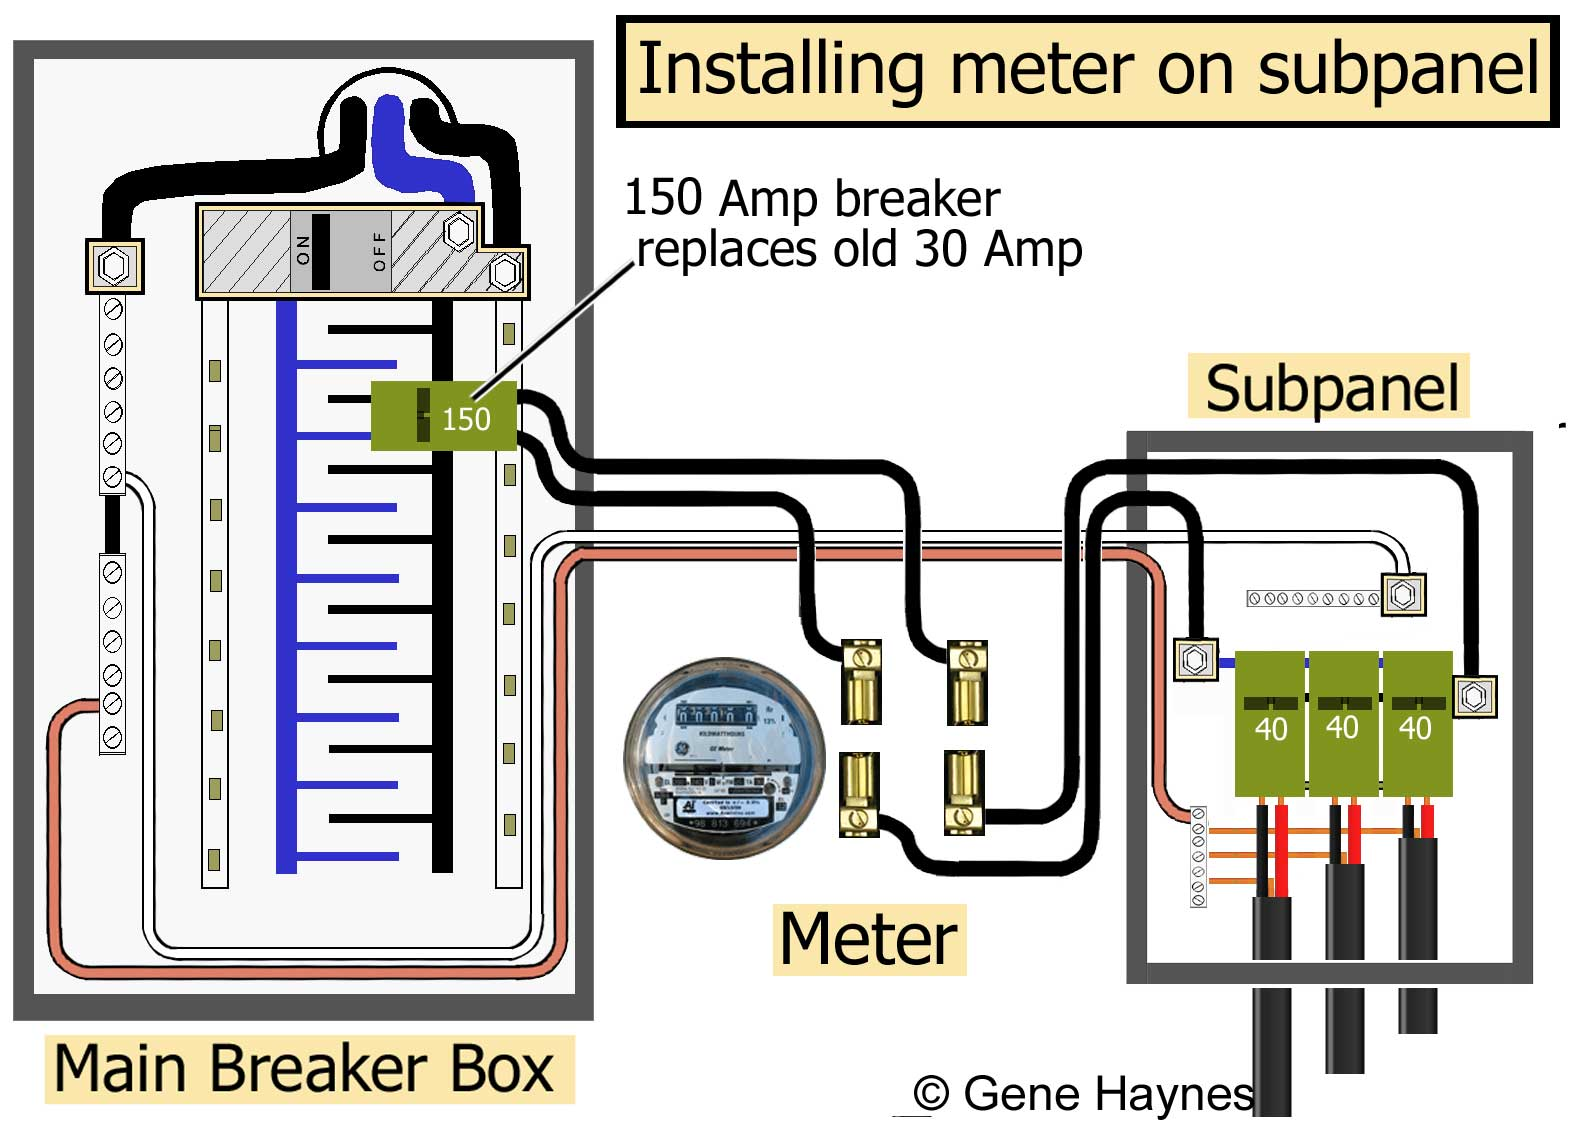 Main subpanel Tankless meter 600 how to wire tankless electric water heater how to wire a 100 amp sub panel diagram at panicattacktreatment.co